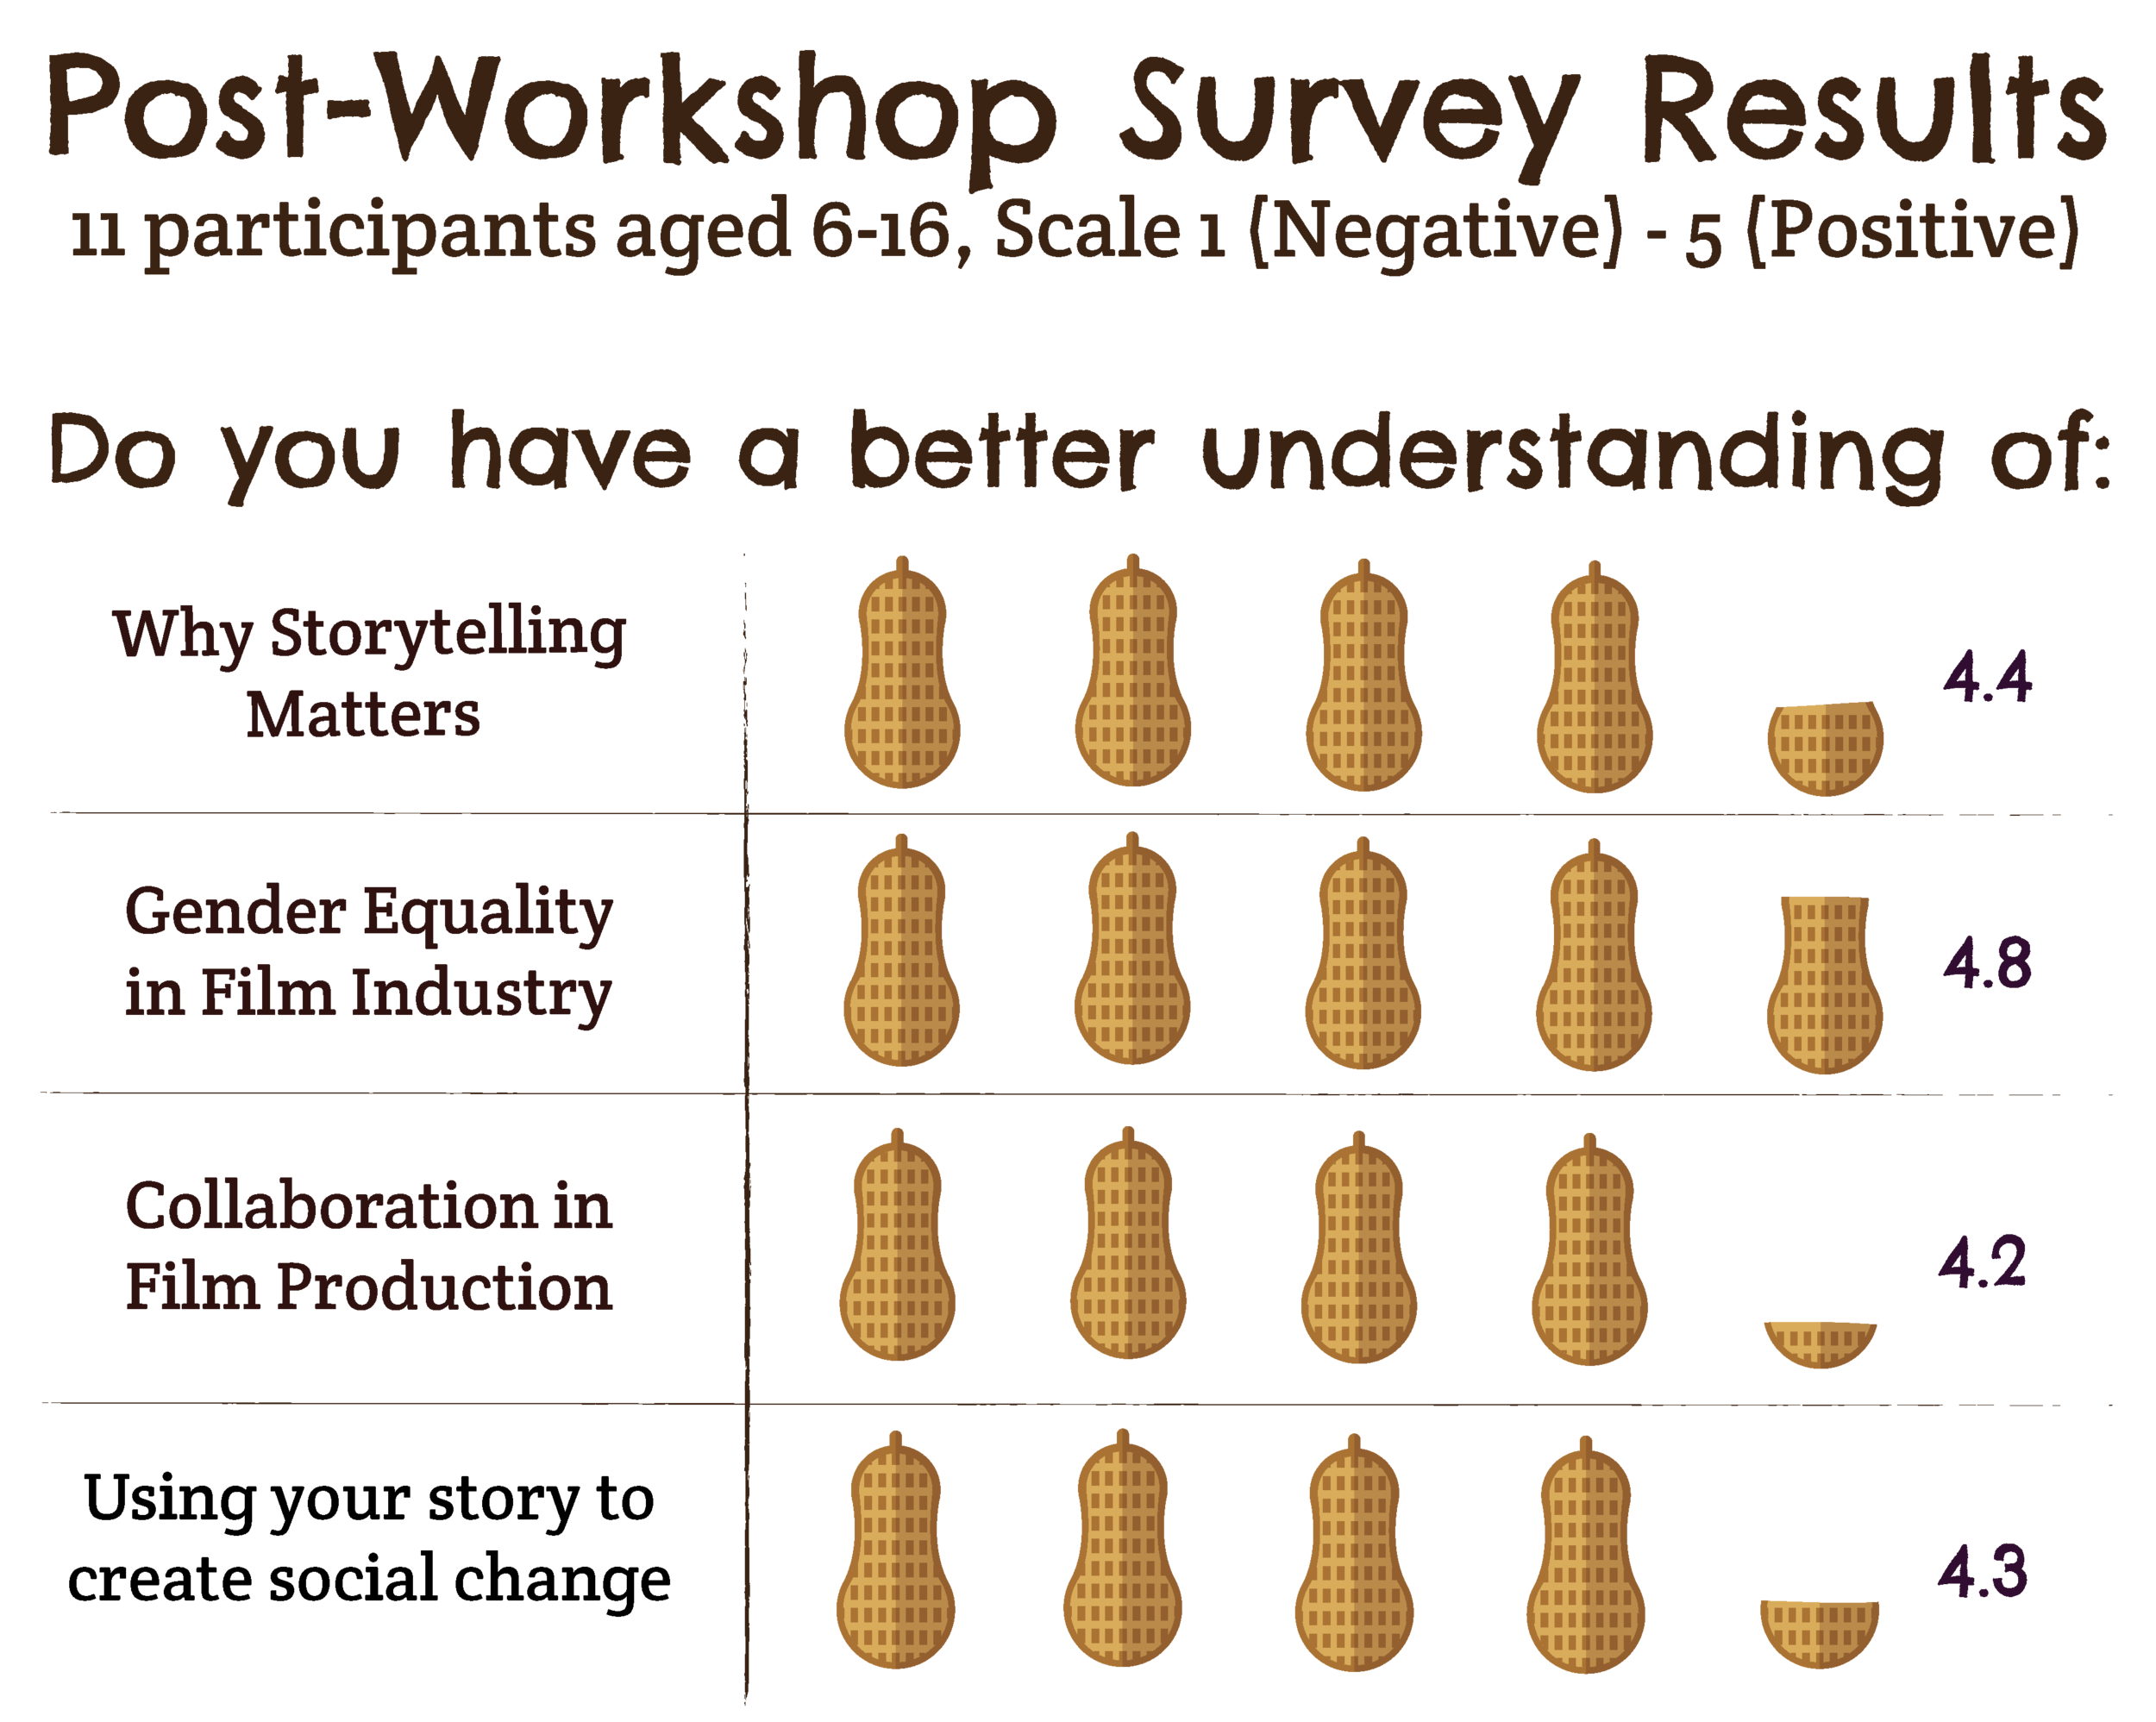 Kickstarter_WorkshopSurvey.jpg